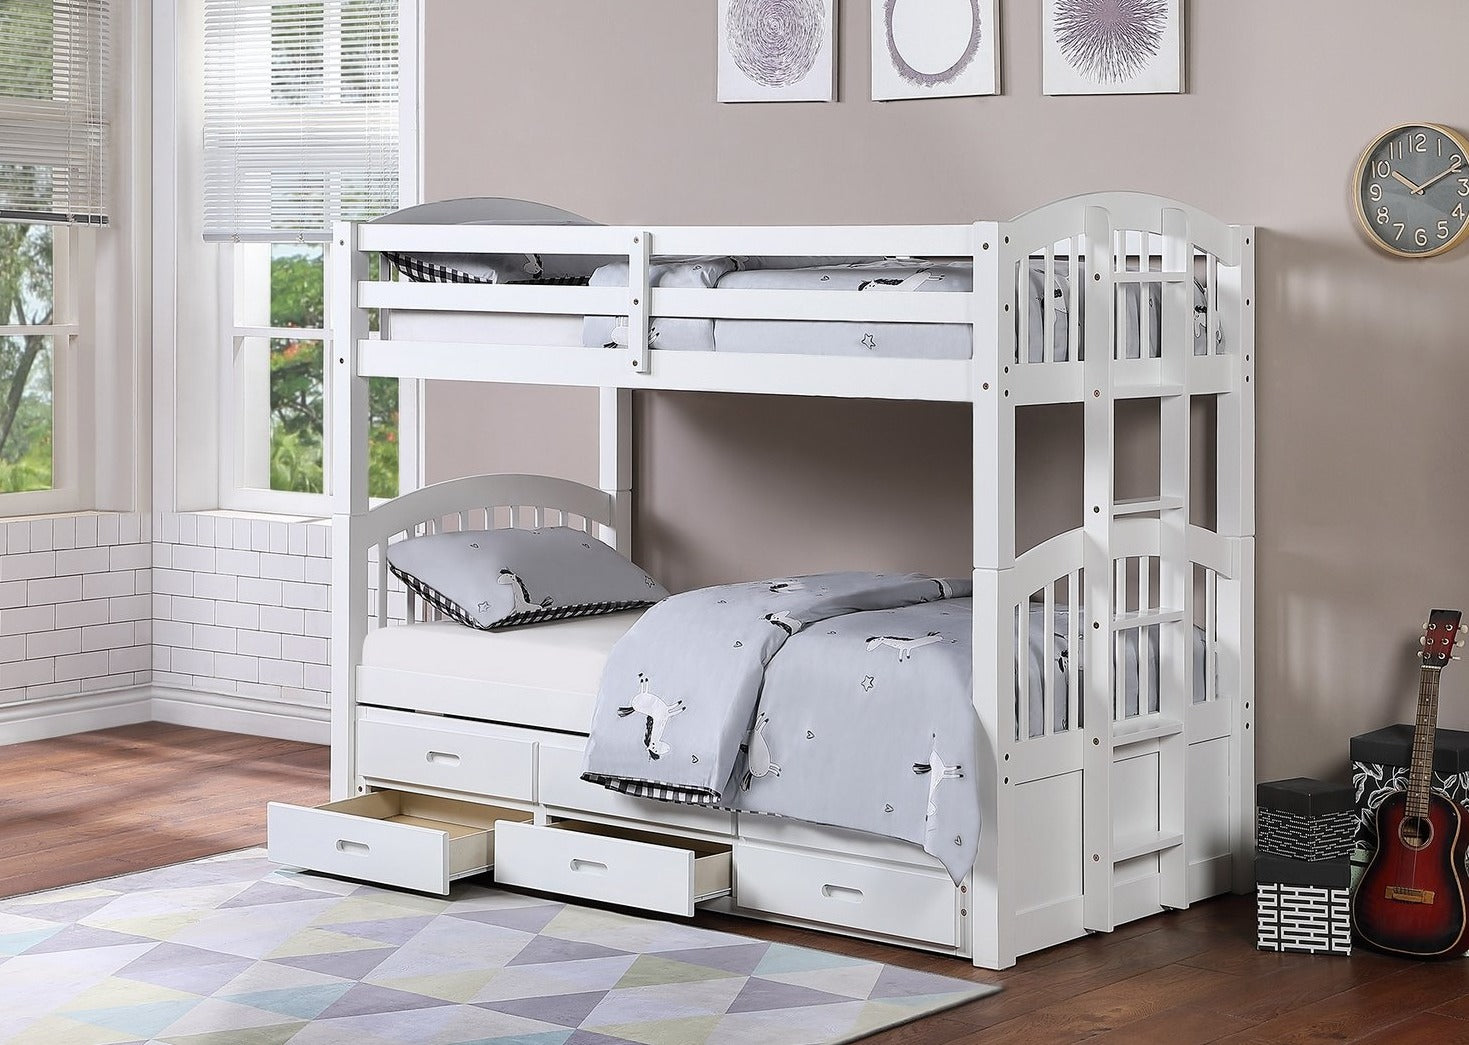 B 1842 - Single / Single - Bunk Bed - White - Lit Superposé